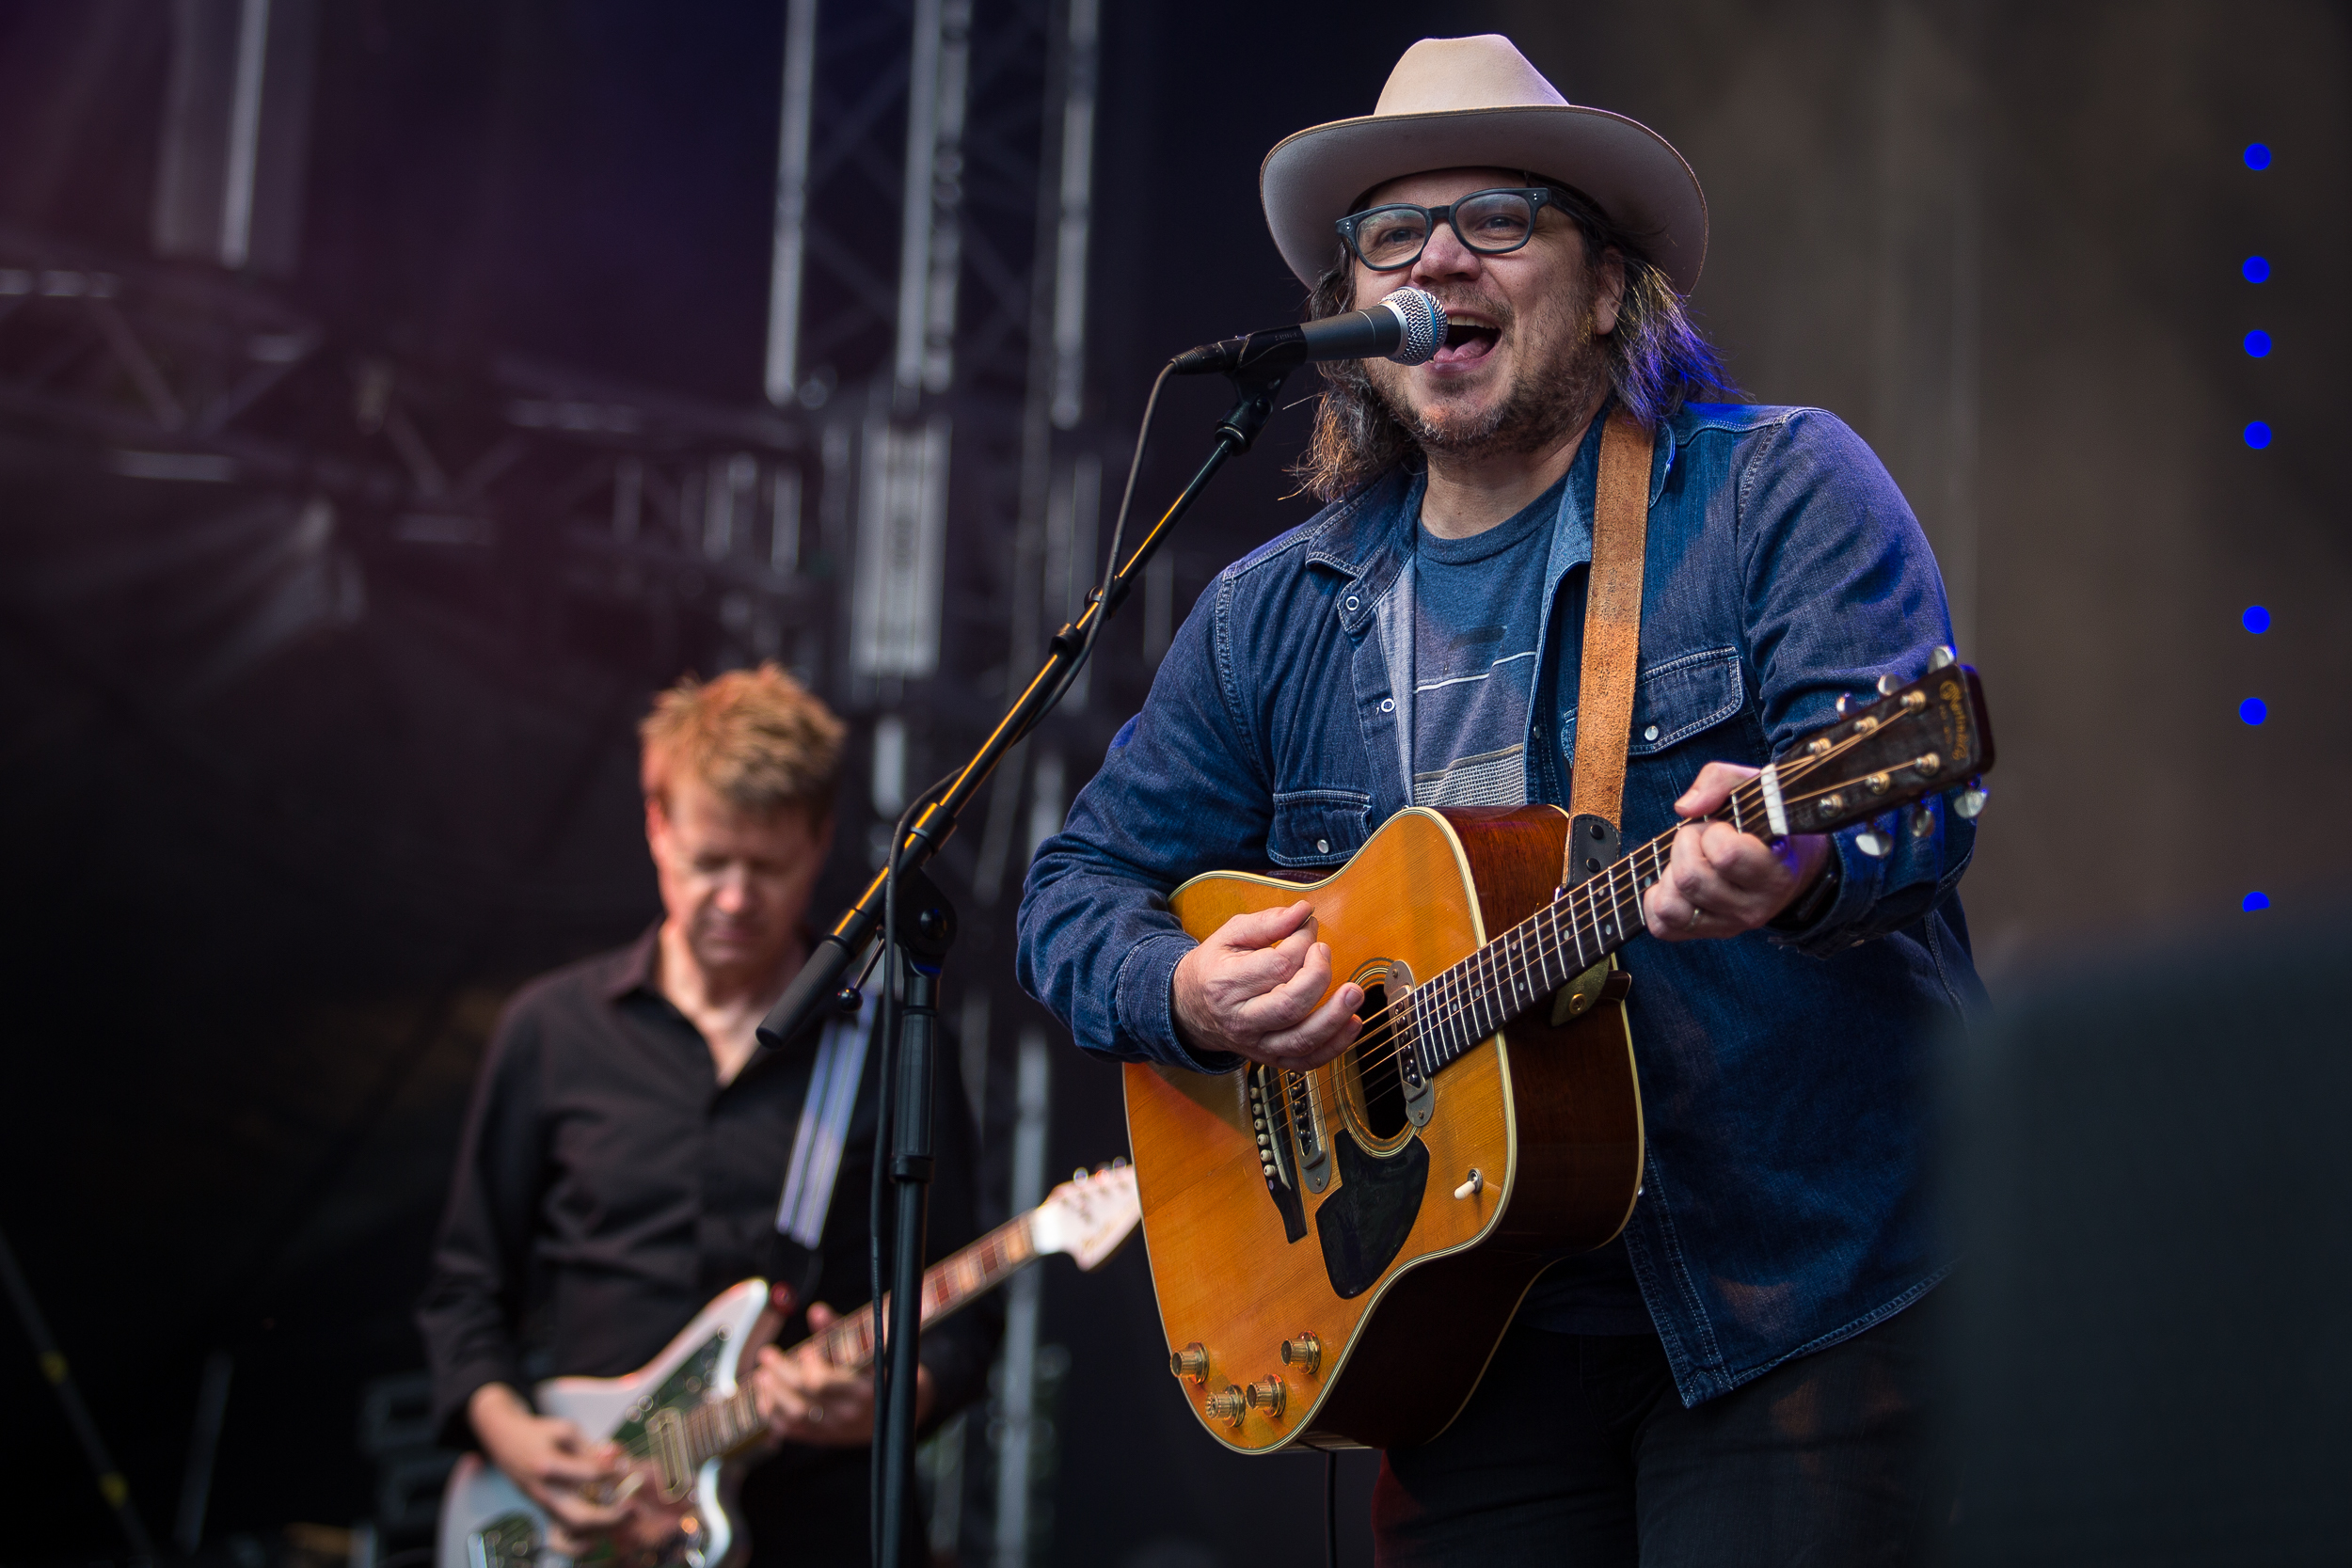 Wilco at Bergenfest